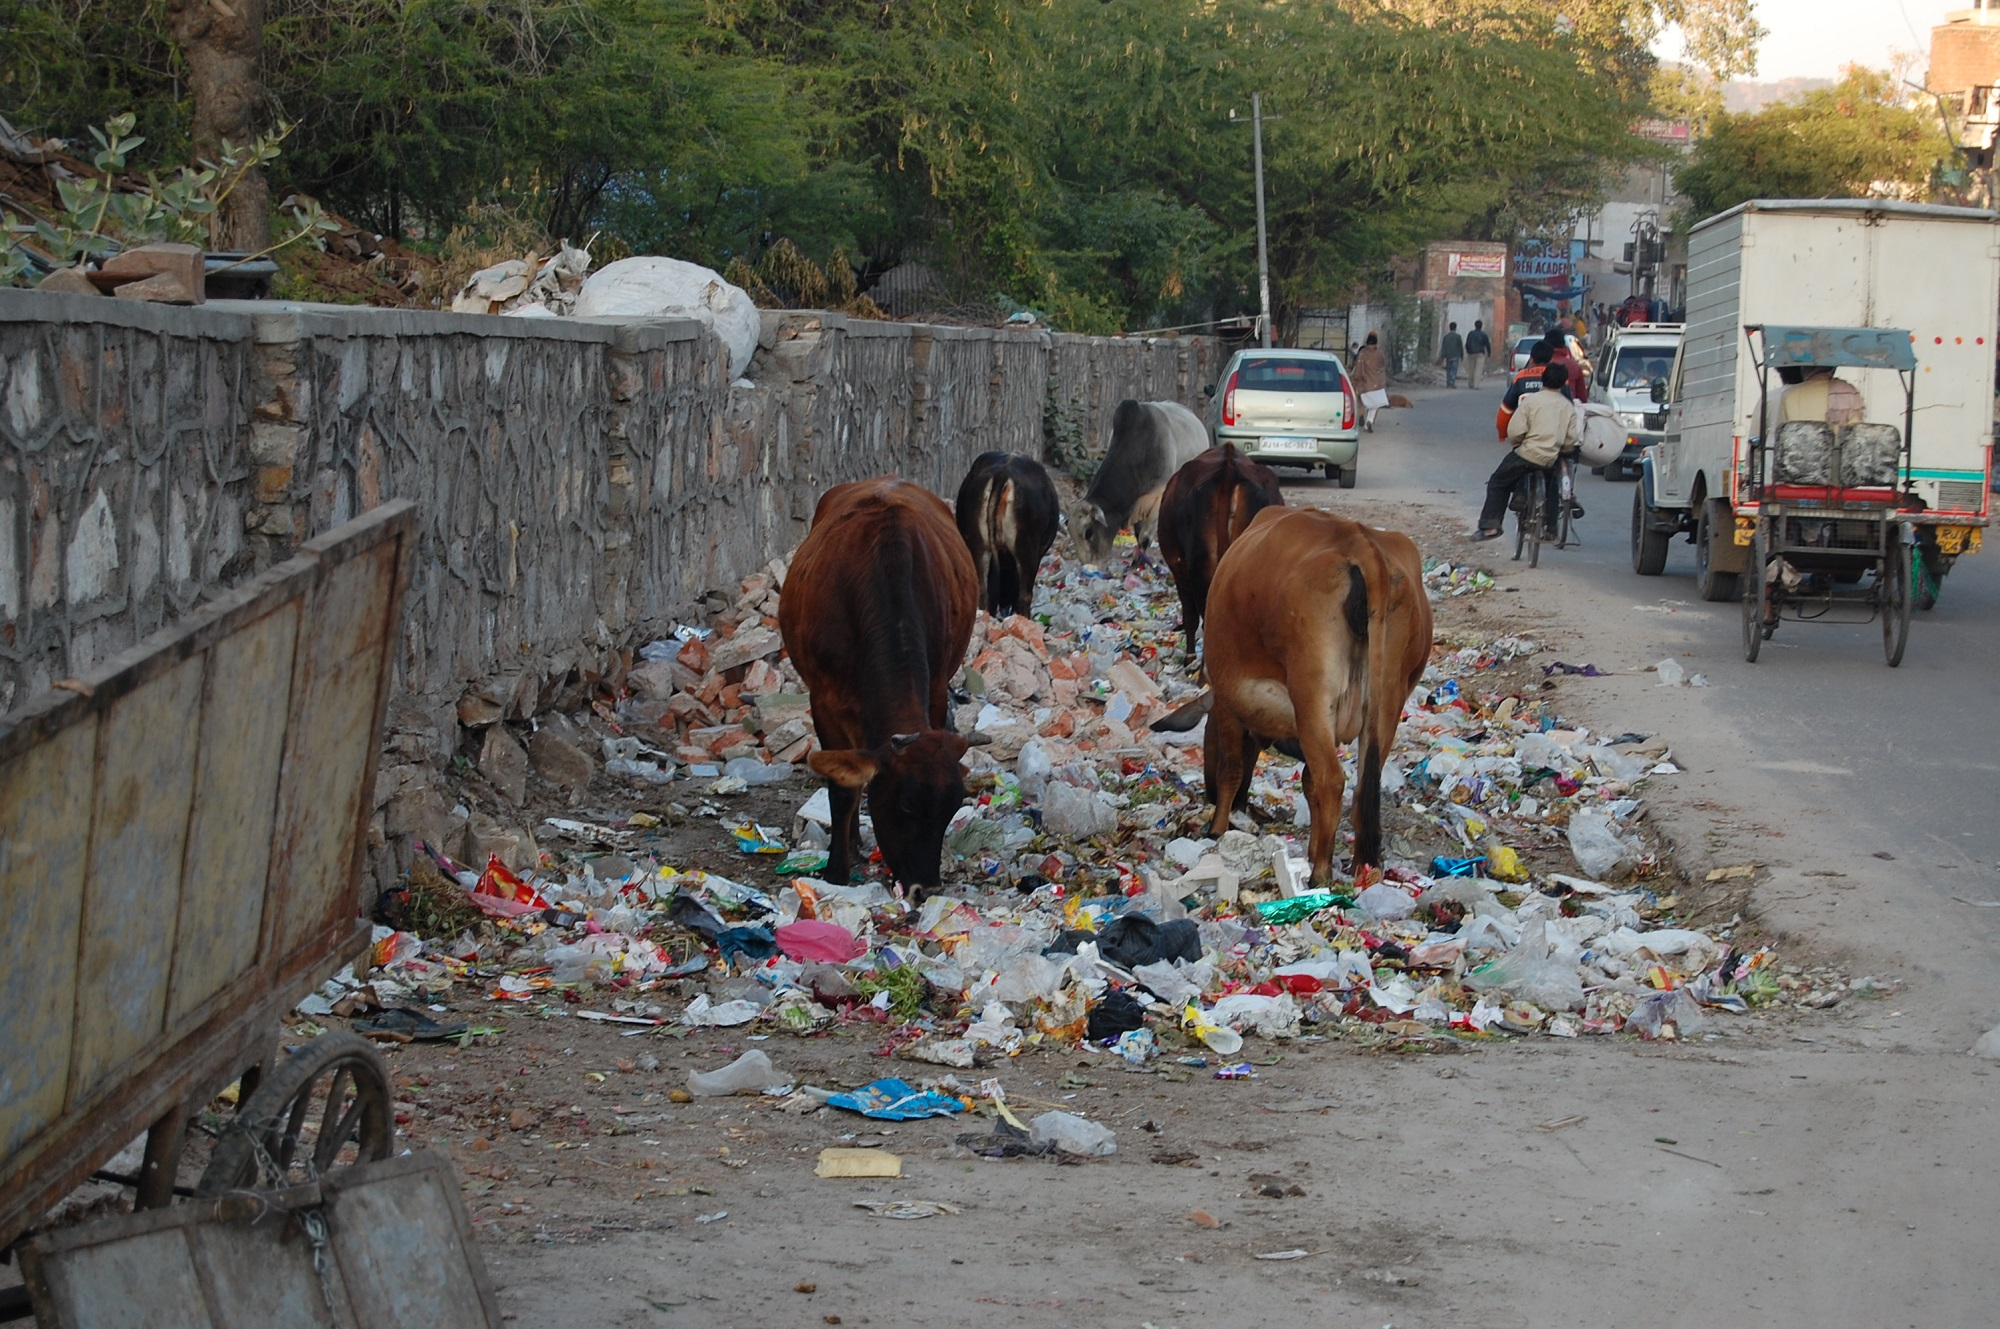 Cows feed among the rubbish in India. Image from Wikipedia, trash, pollution, waste, clean up, sanitation